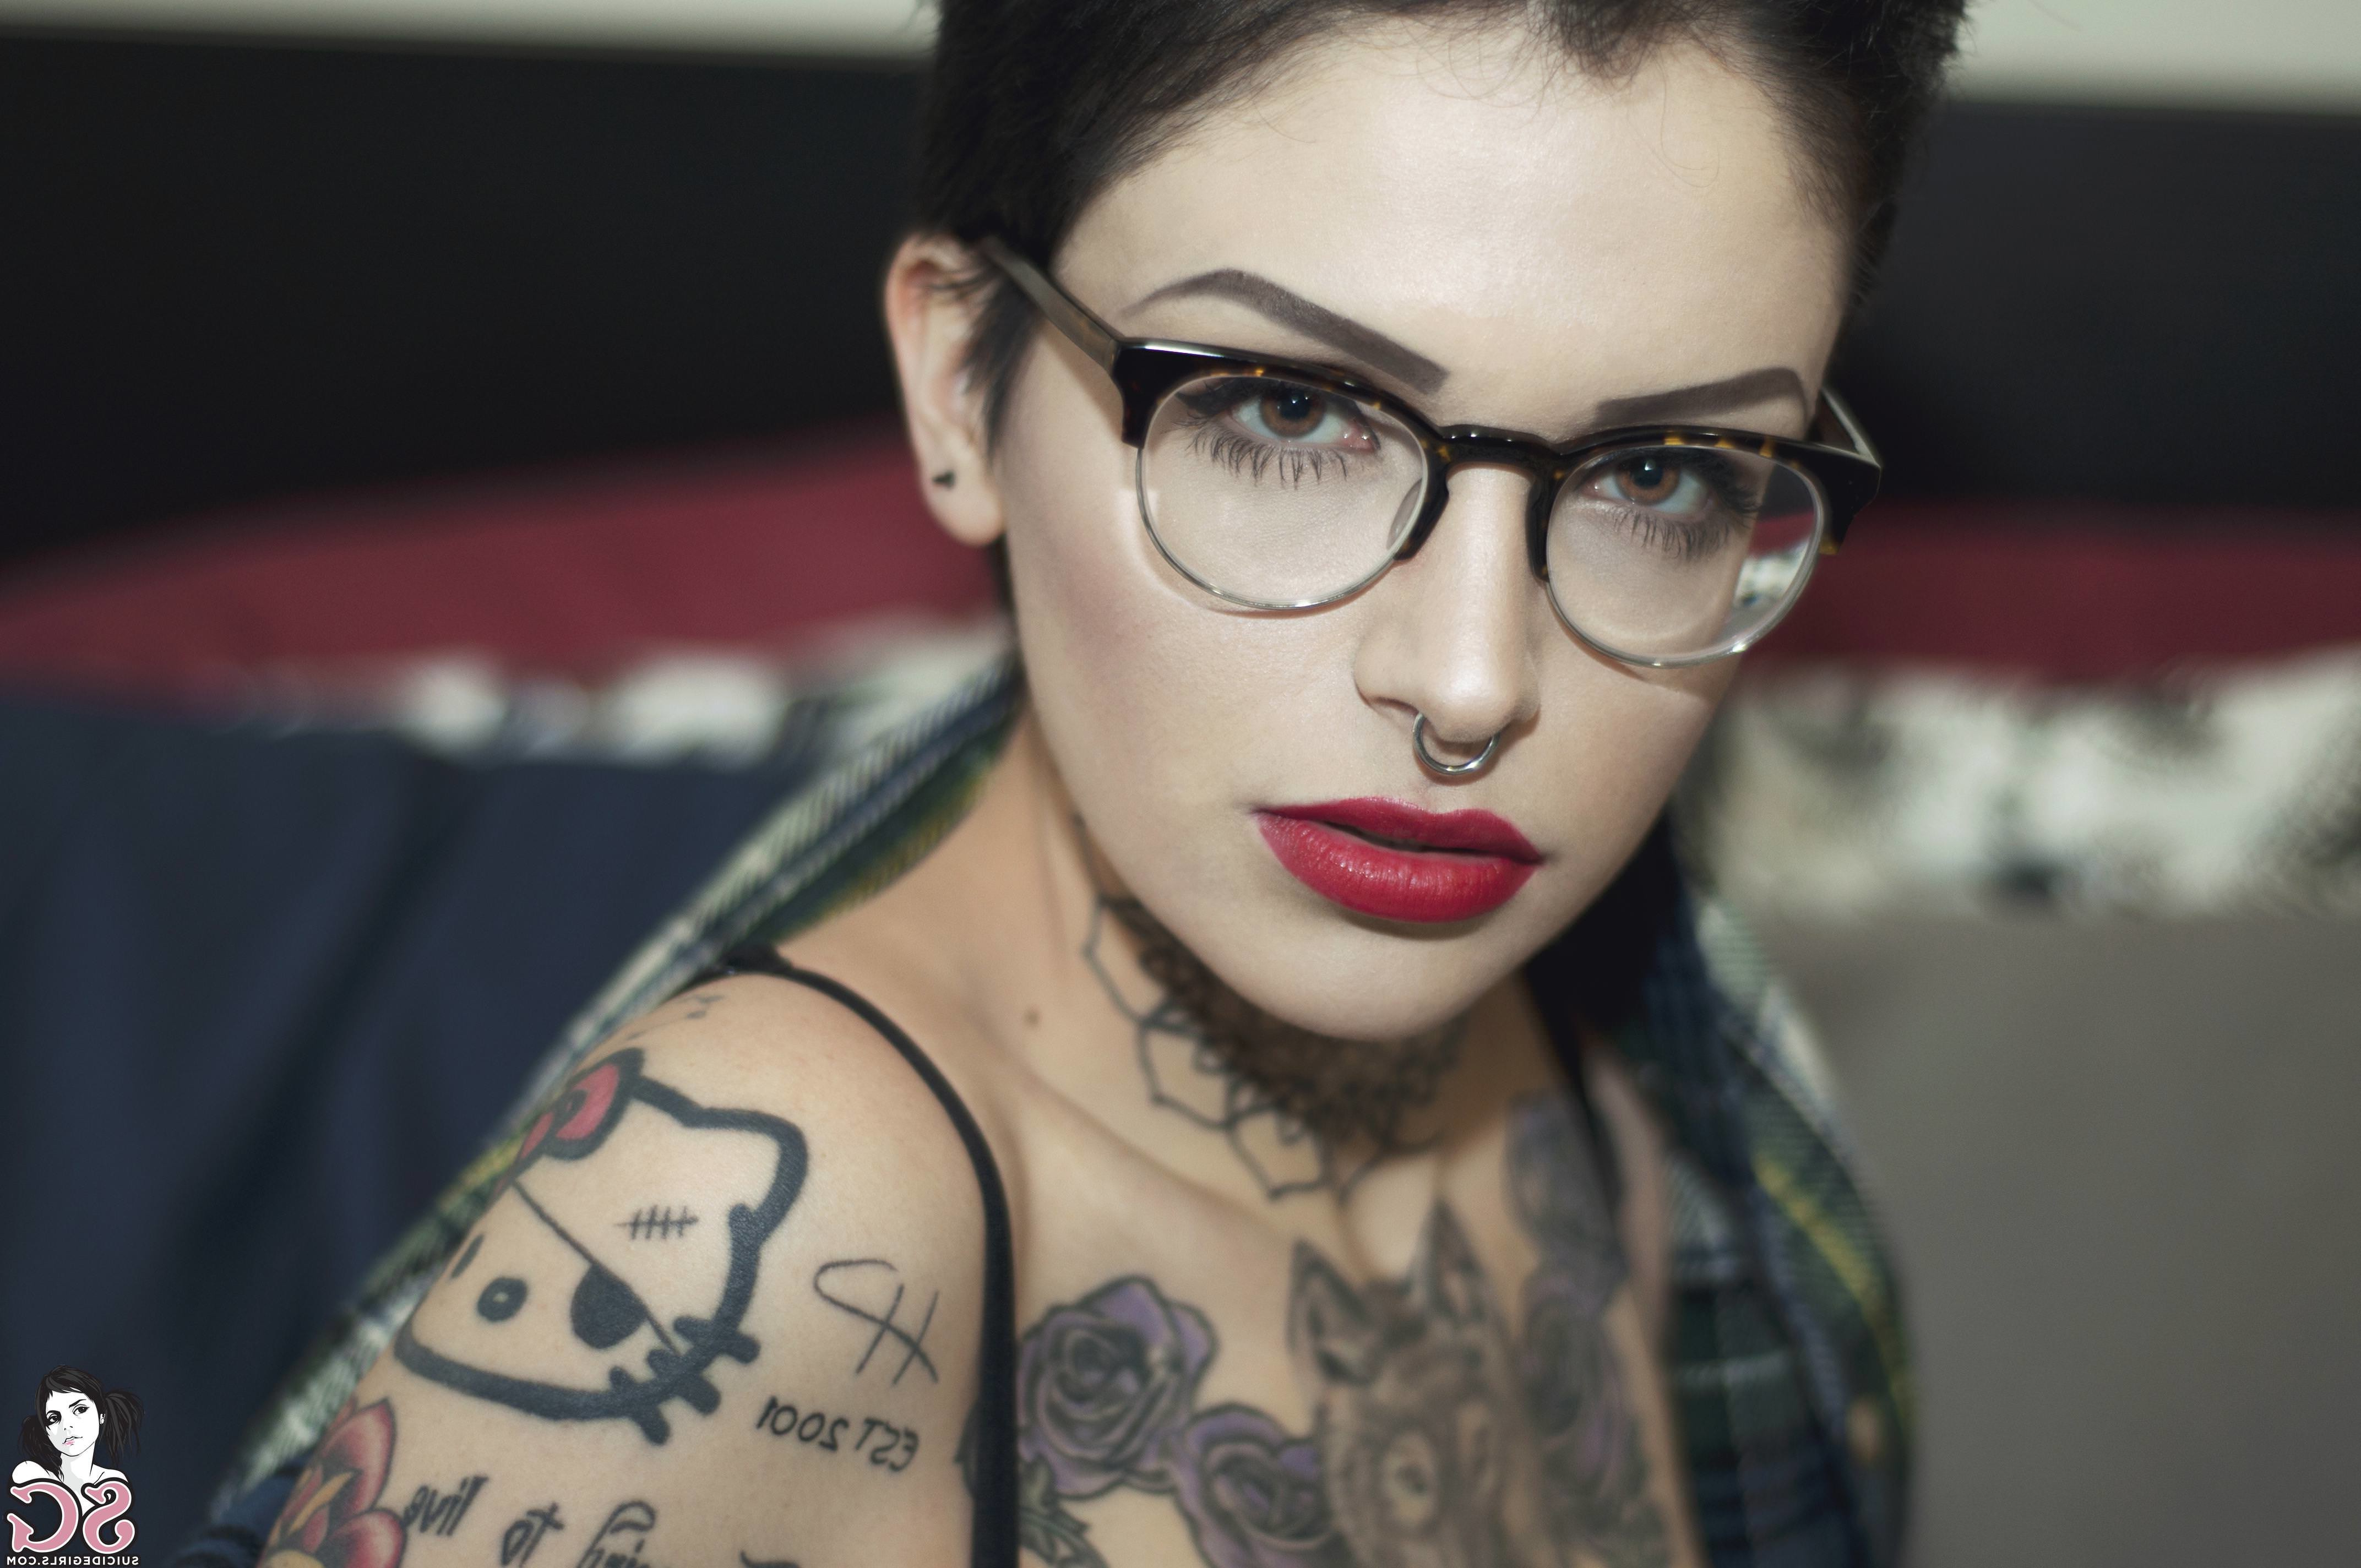 Wallpaper : Suicide Girls, Face, Looking At Viewer, Black Hair Throughout Short Hairstyles For Ladies With Glasses (View 20 of 25)